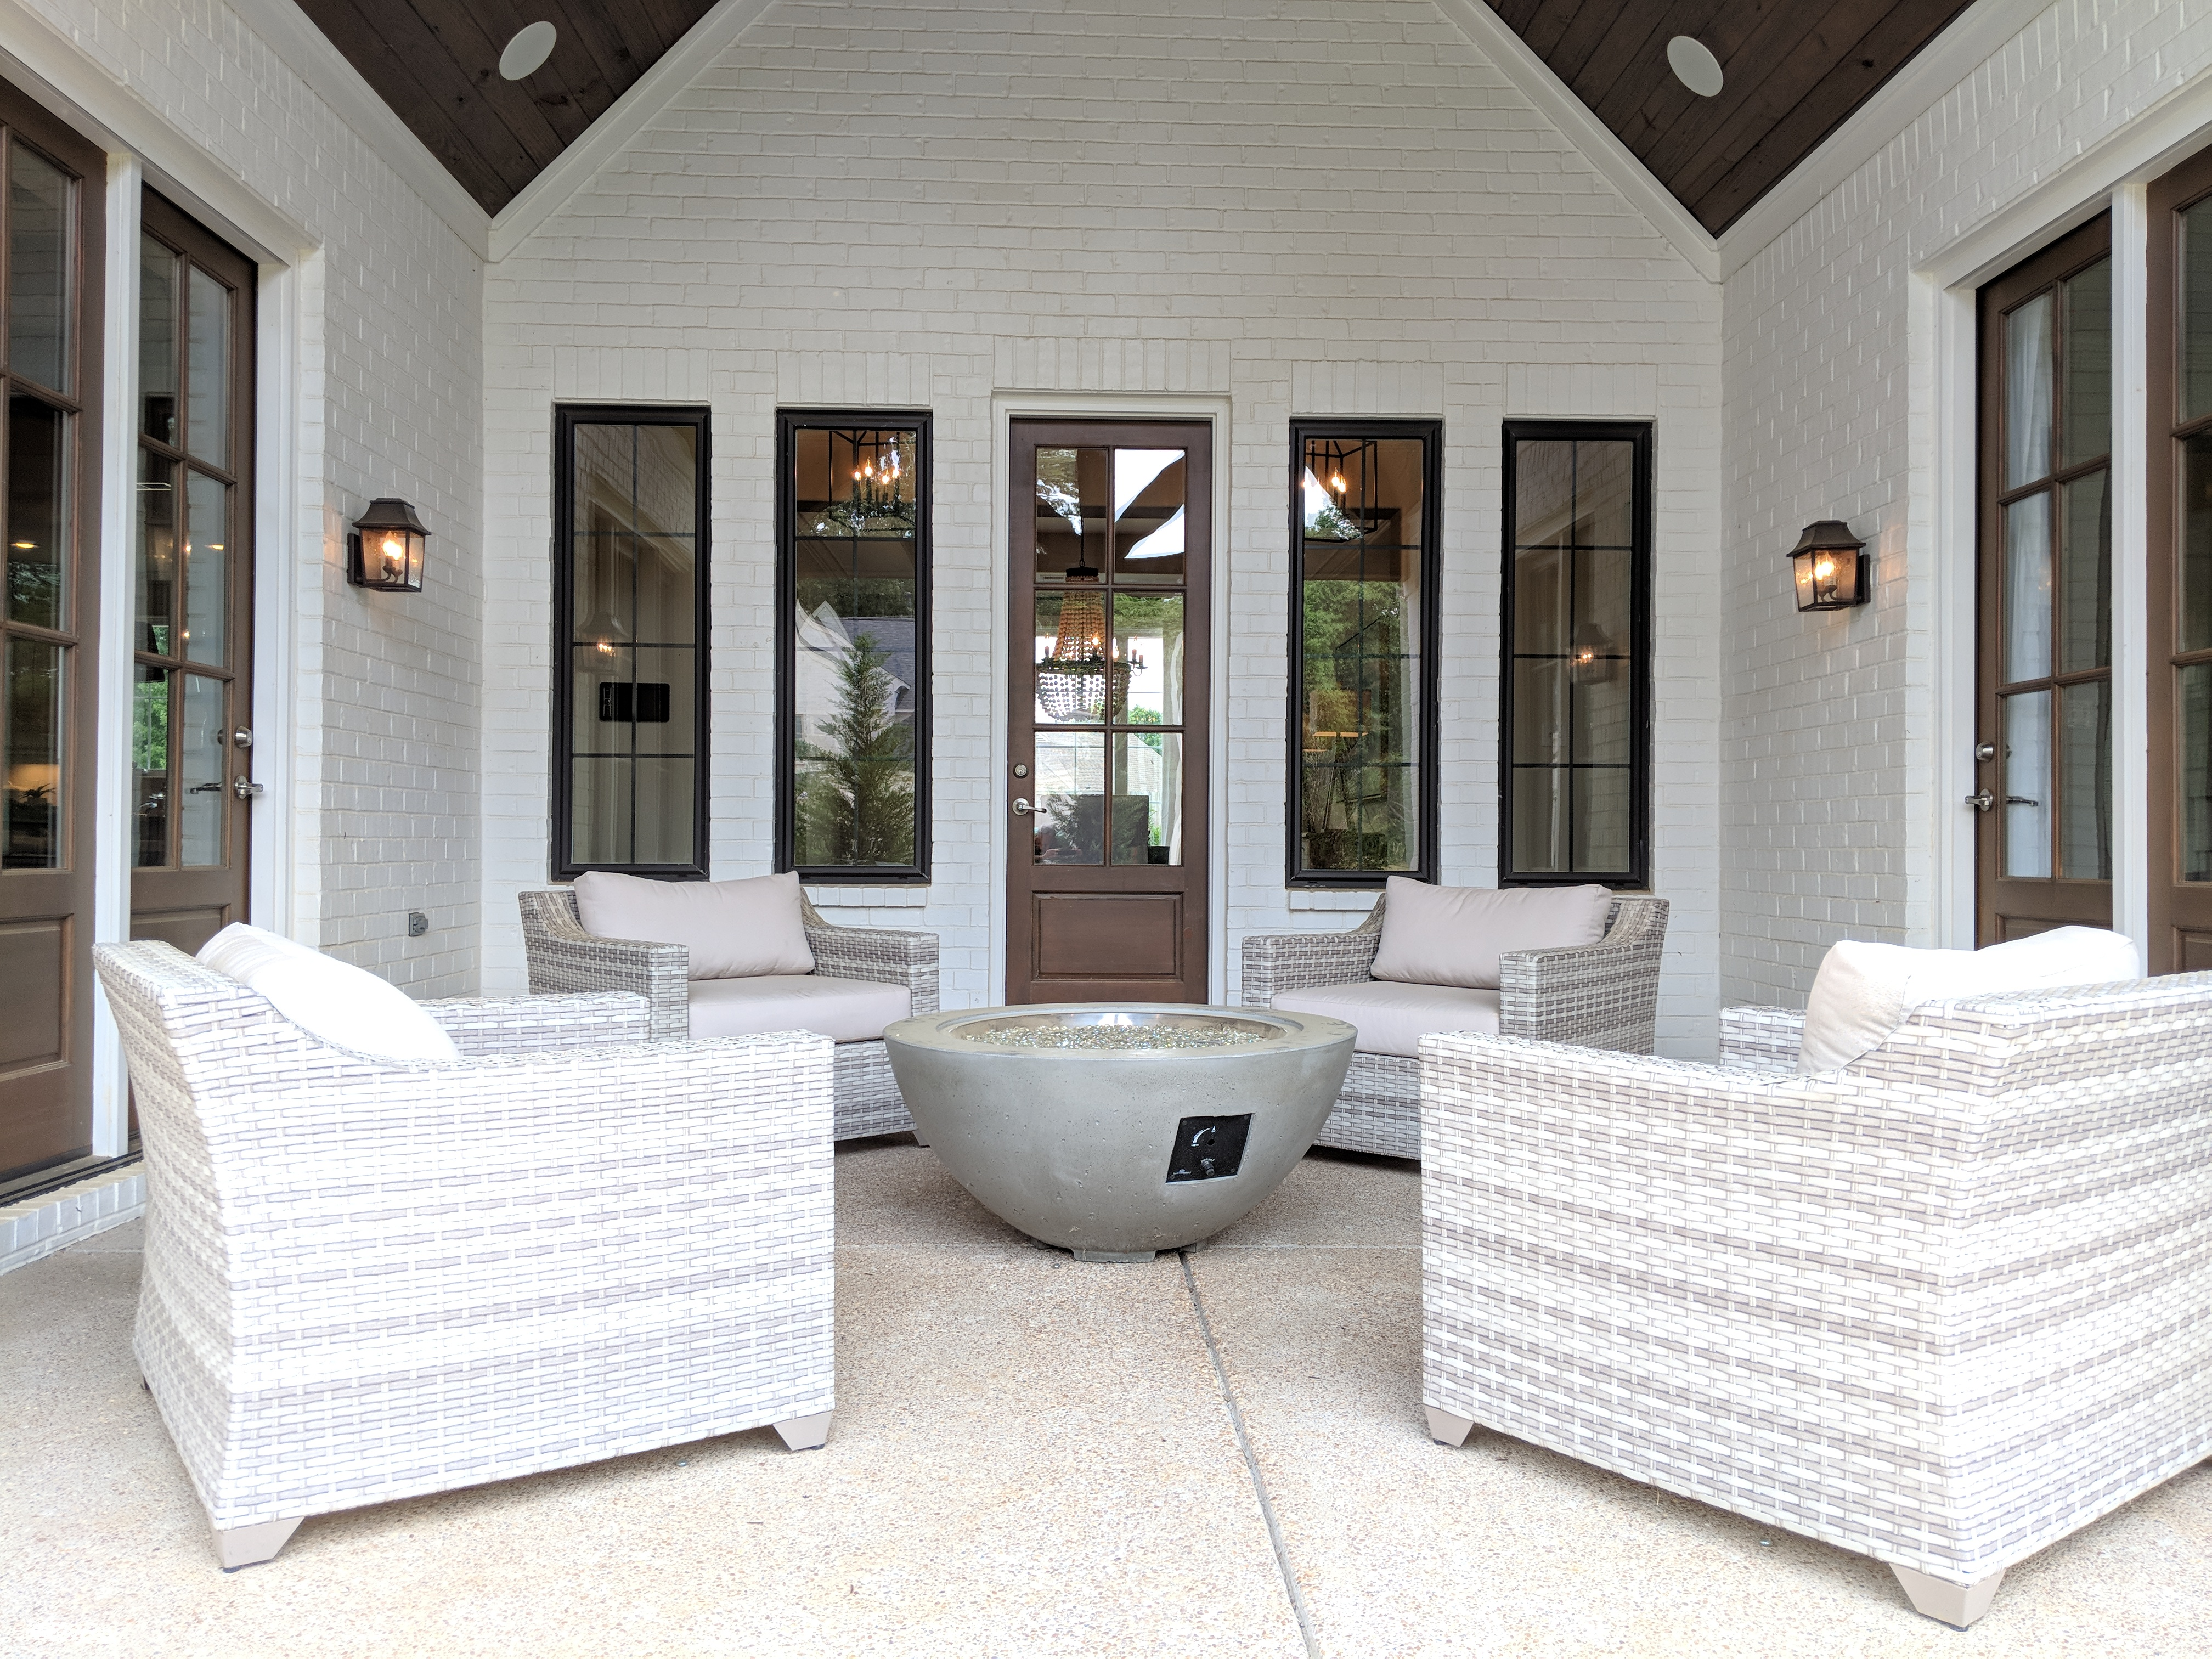 Homes for sales in Memphis area. Covered porch joining living room, kitchen and master bedroom.